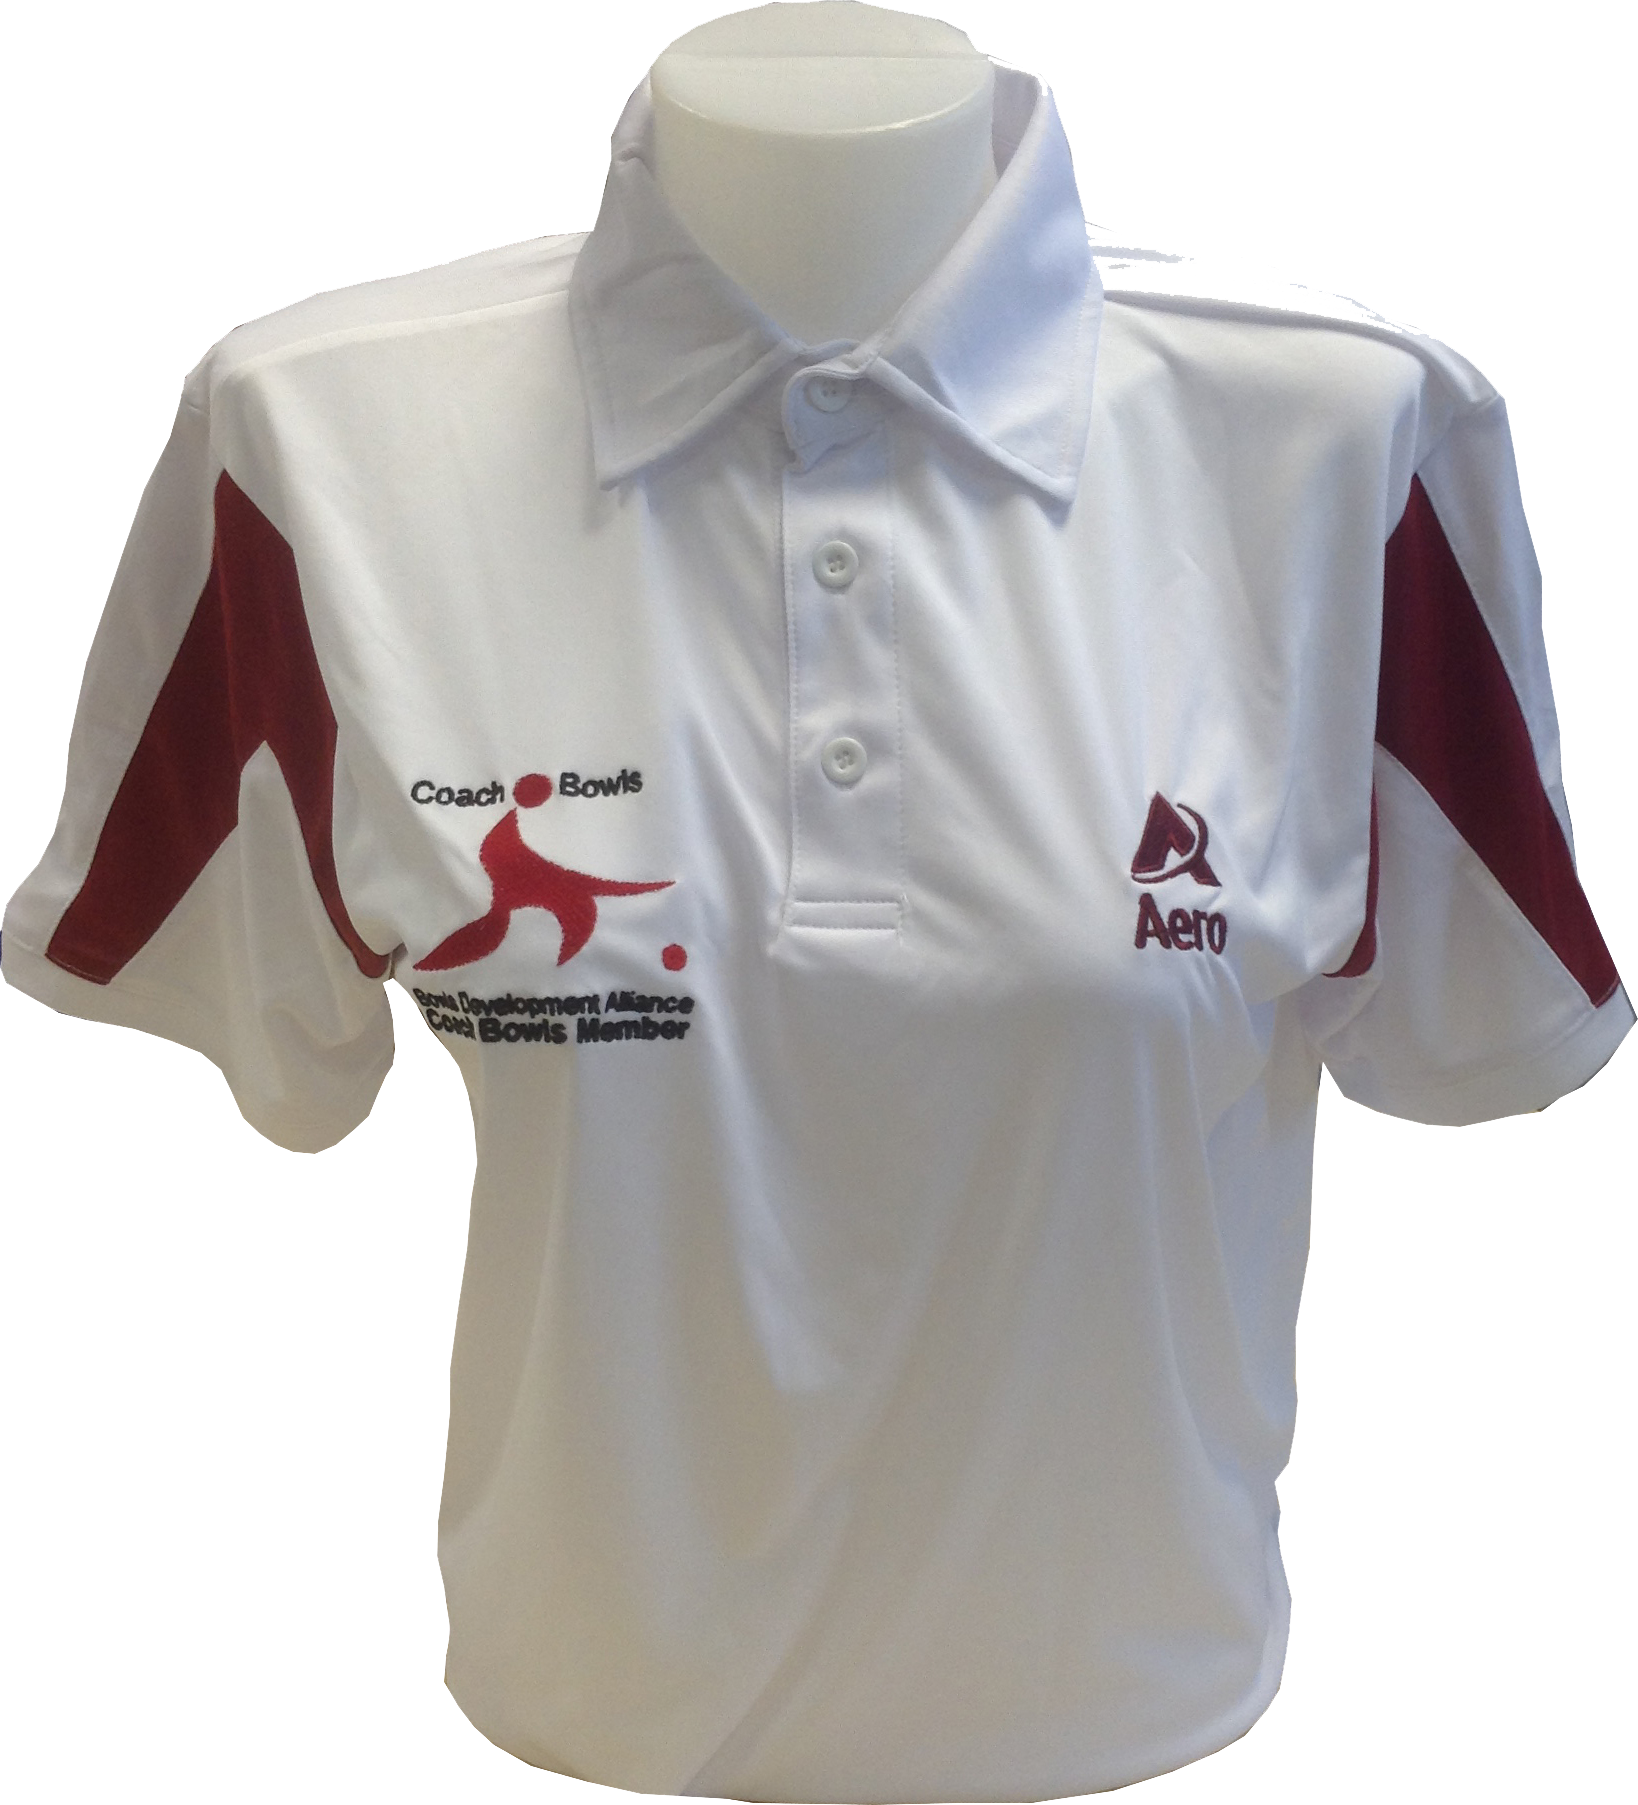 Aero Bowls Members Shirt